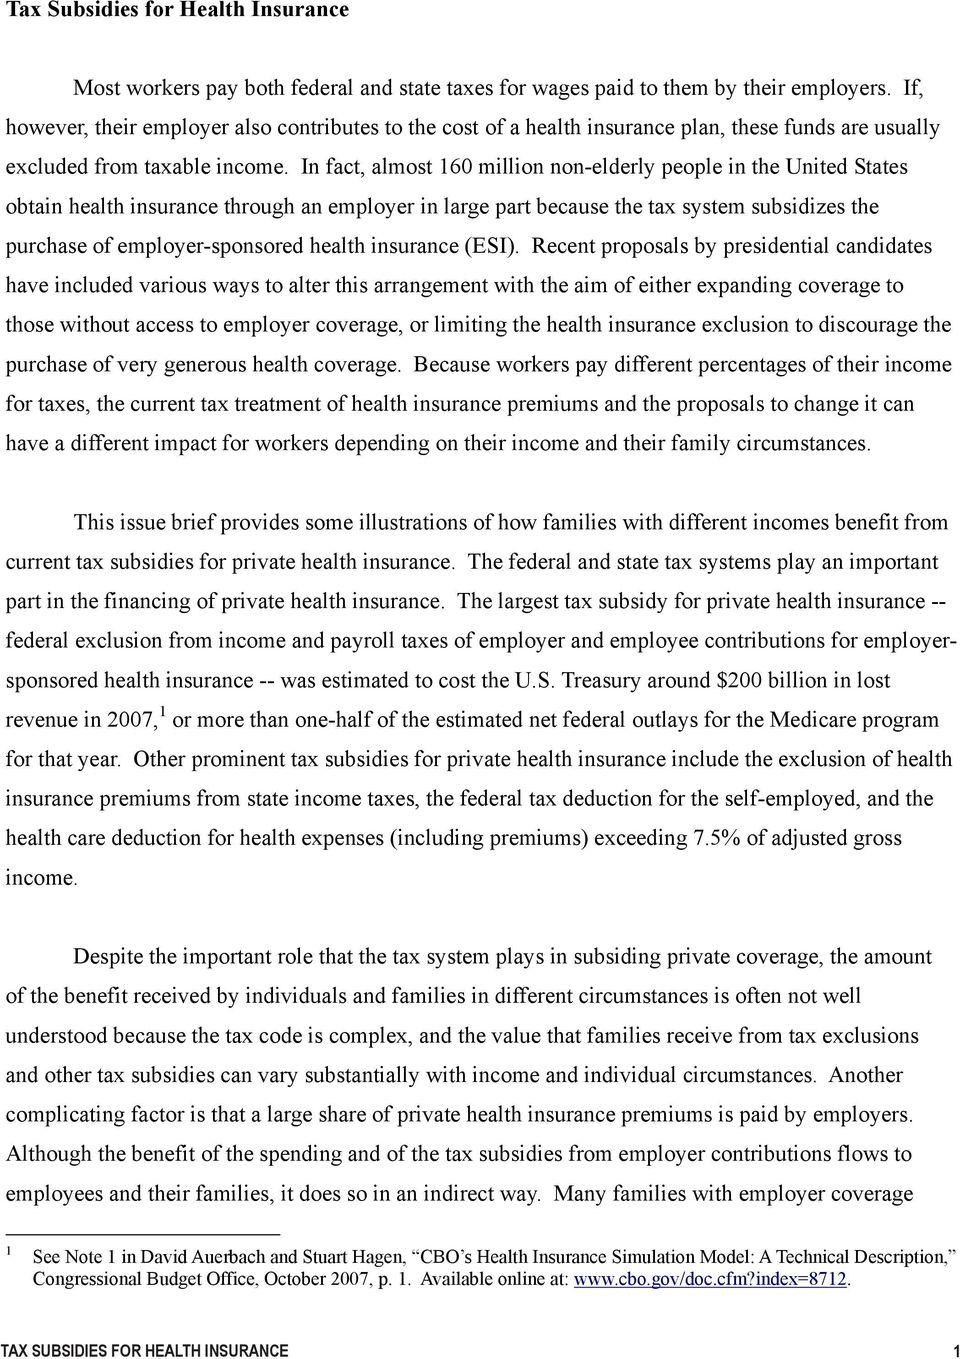 In fact, almost 160 million non-elderly people in the United States obtain health insurance through an employer in large part because the tax system subsidizes the purchase of employer-sponsored